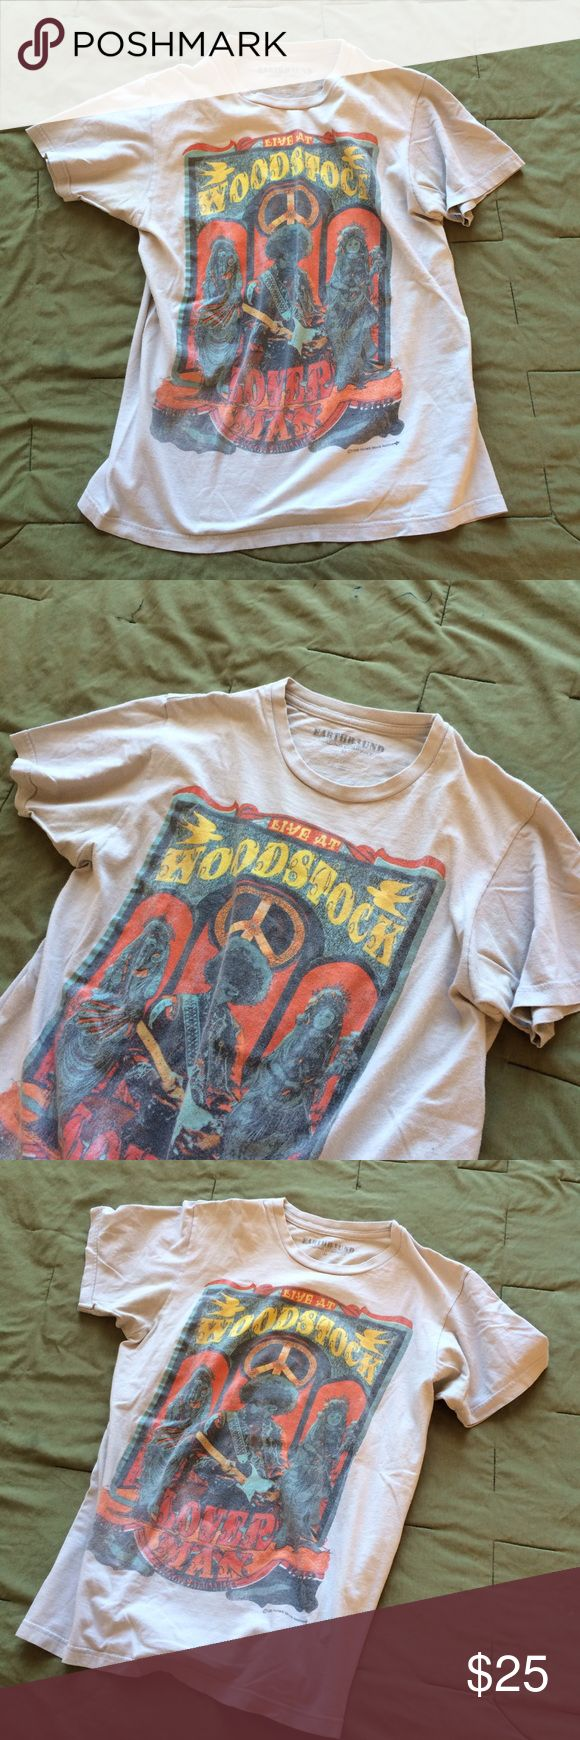 Woodstock Earthbound Trading Company T Shirt! - M Awesome cream colored short sleeve t Shirt with Woodstock Graphic. From Earthbound Trading Company in Austin TX. Great moderately used condition. No stains or rips. Soft comfy t shirt! Size M Earthbound Trading Co Tops Tees - Short Sleeve